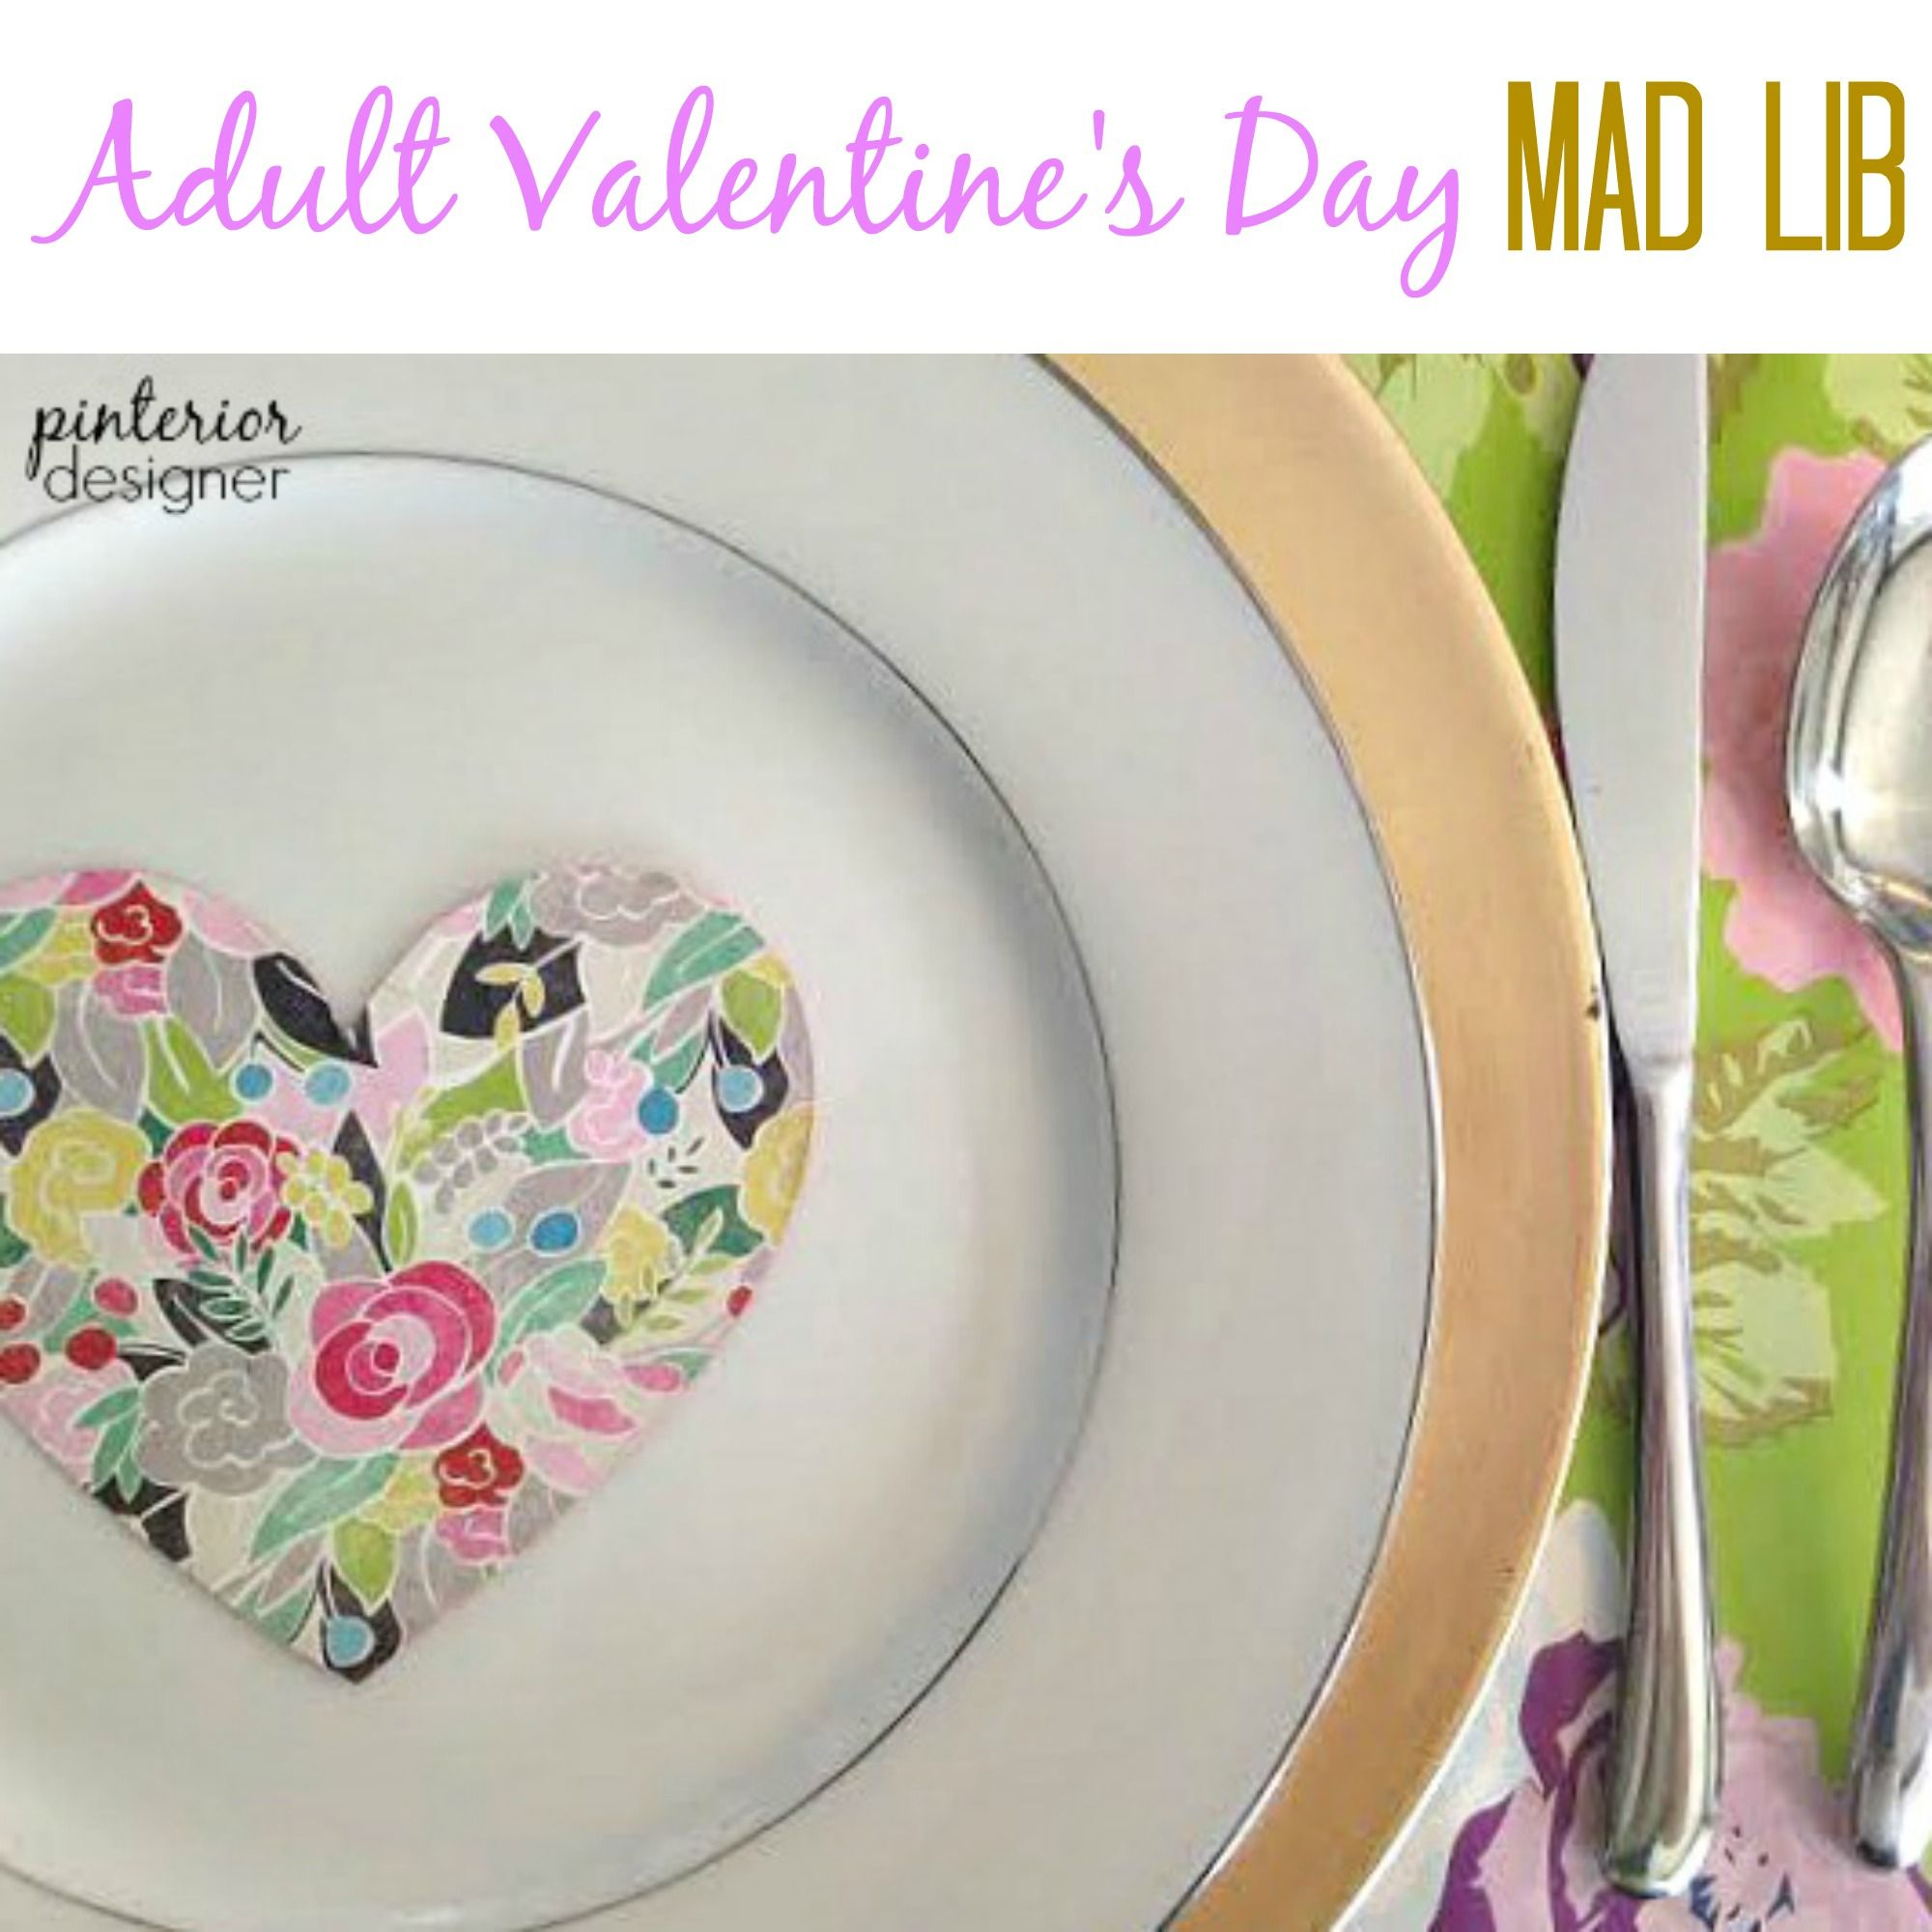 Adult Valentines Day Mad Lib That Is The Perfect Game To Get Your Party Off To A Hilarious Start